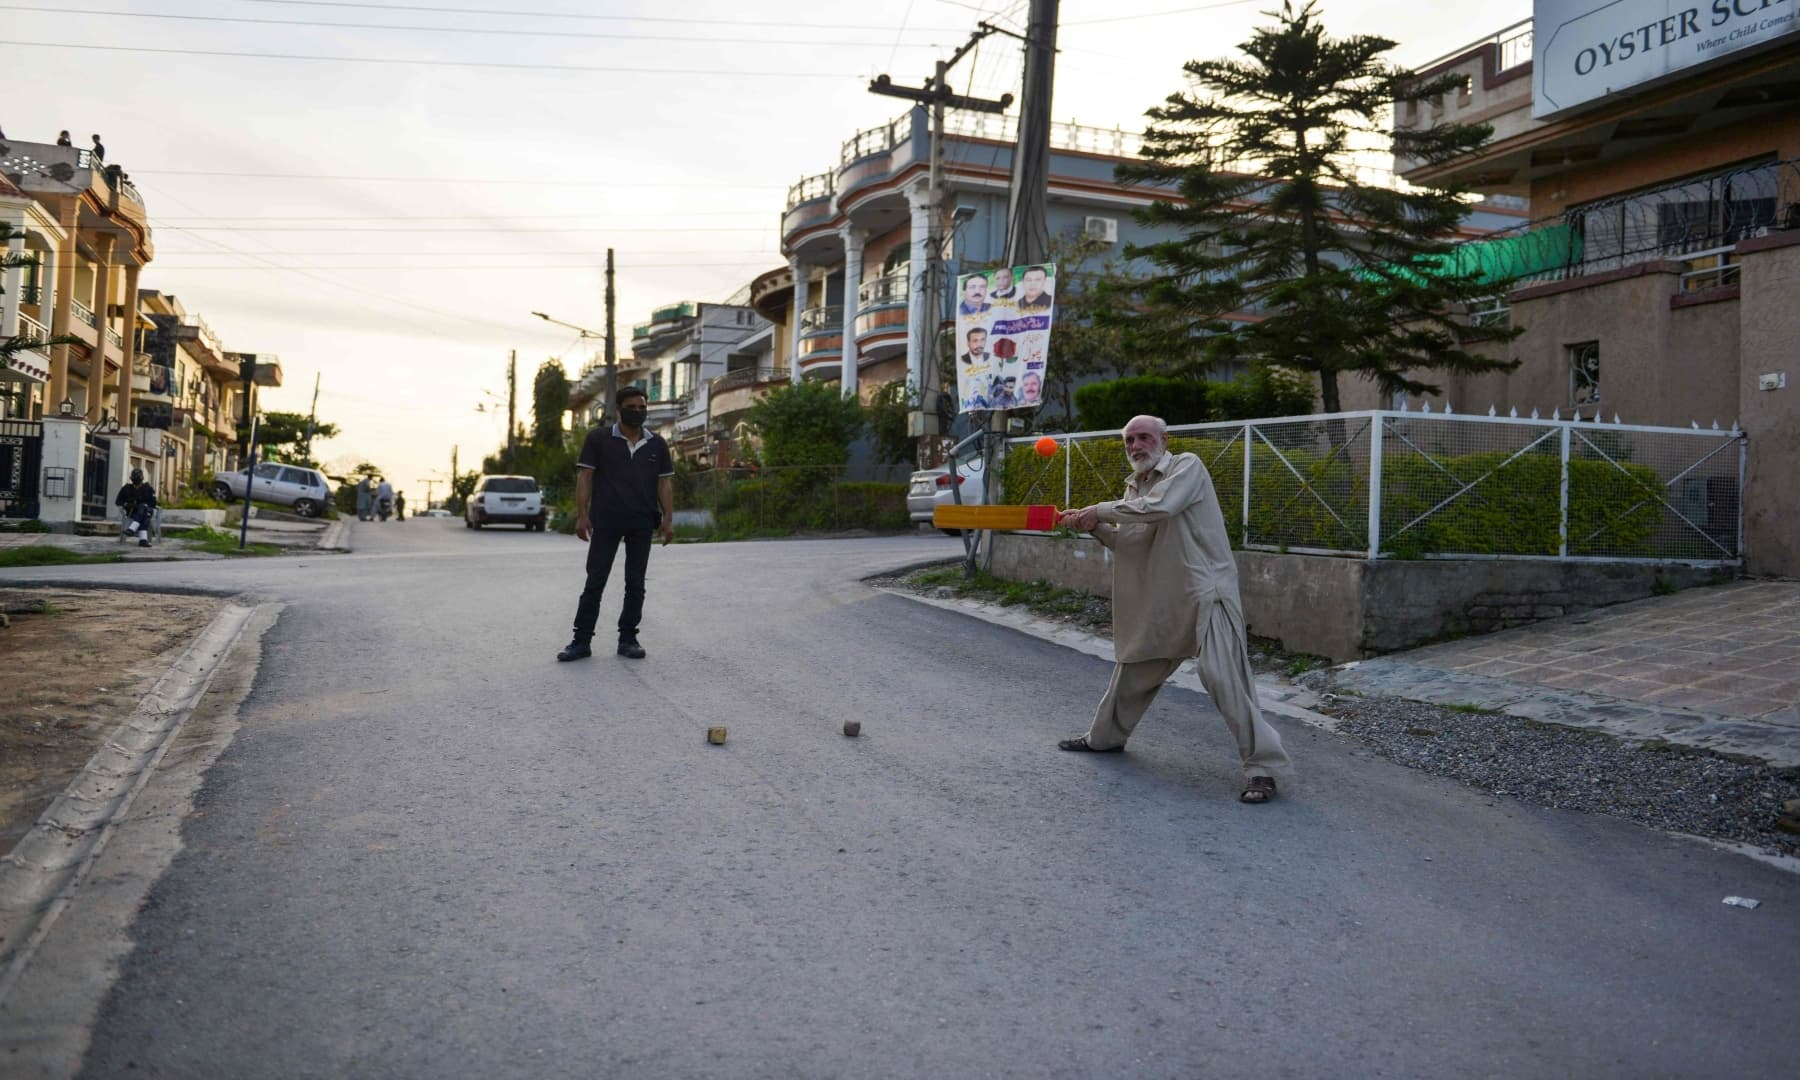 An elderly man plays cricket on a road in Islamabad. — AFP